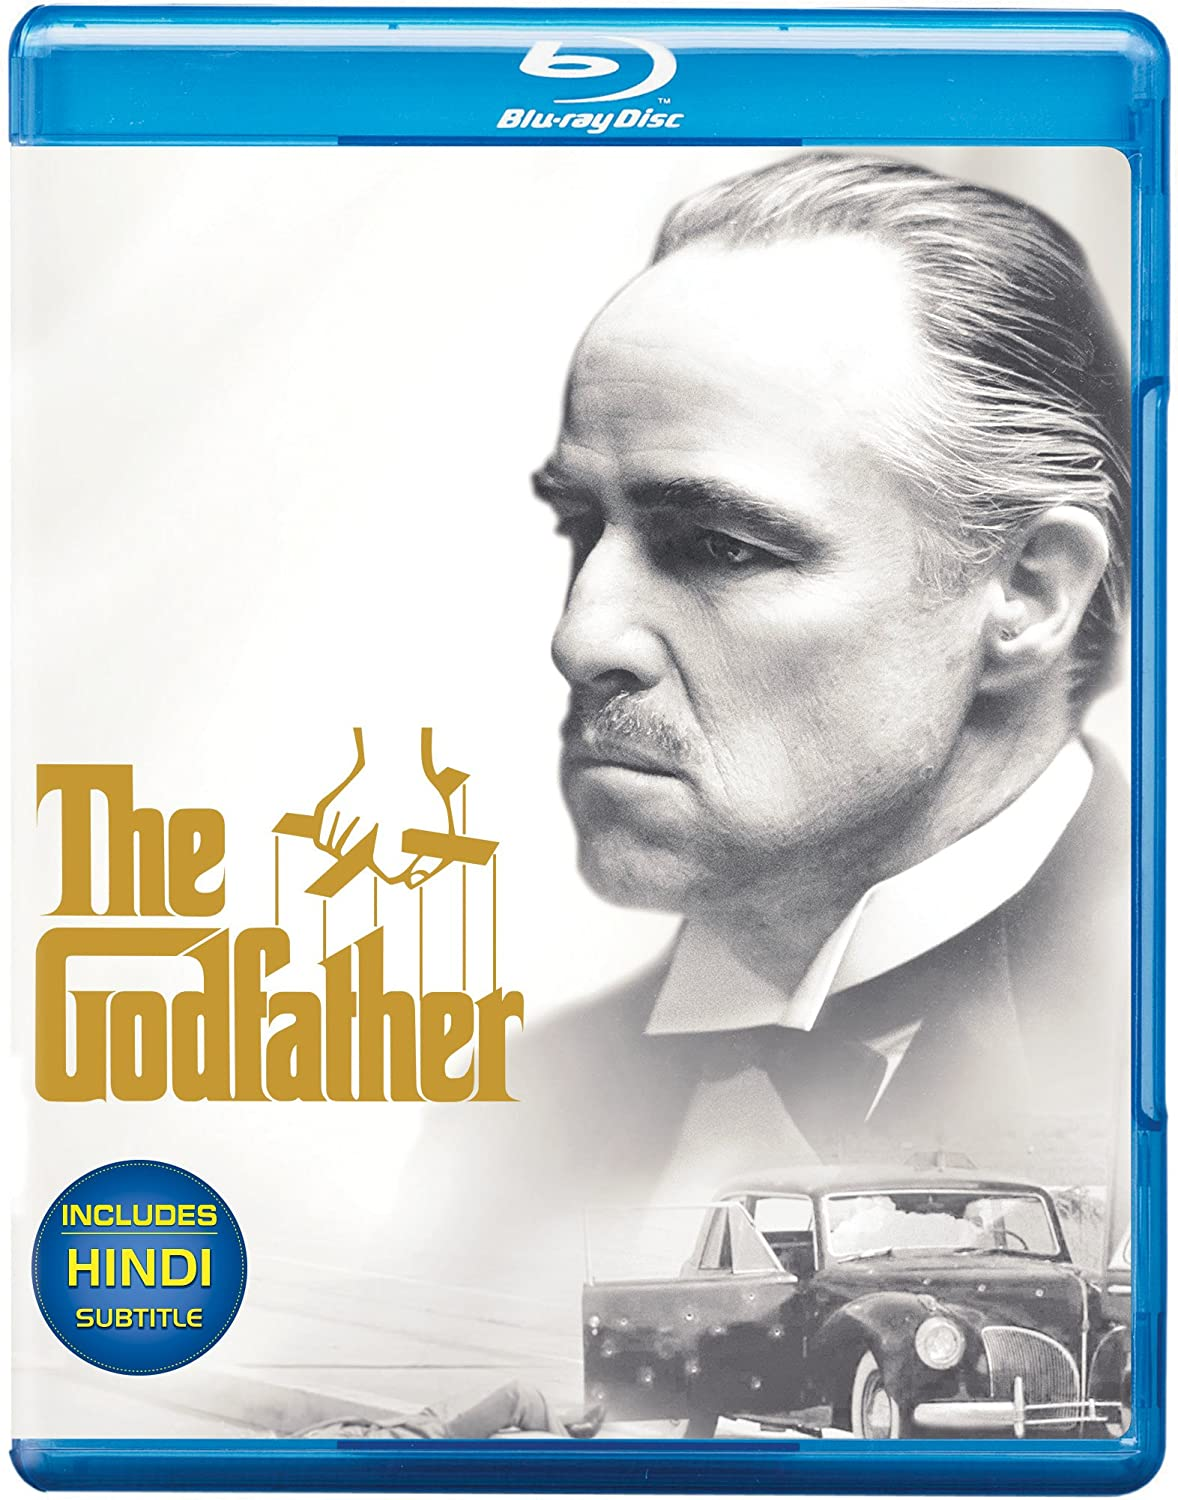 Amazon in: Buy The Godfather (1972) DVD, Blu-ray Online at